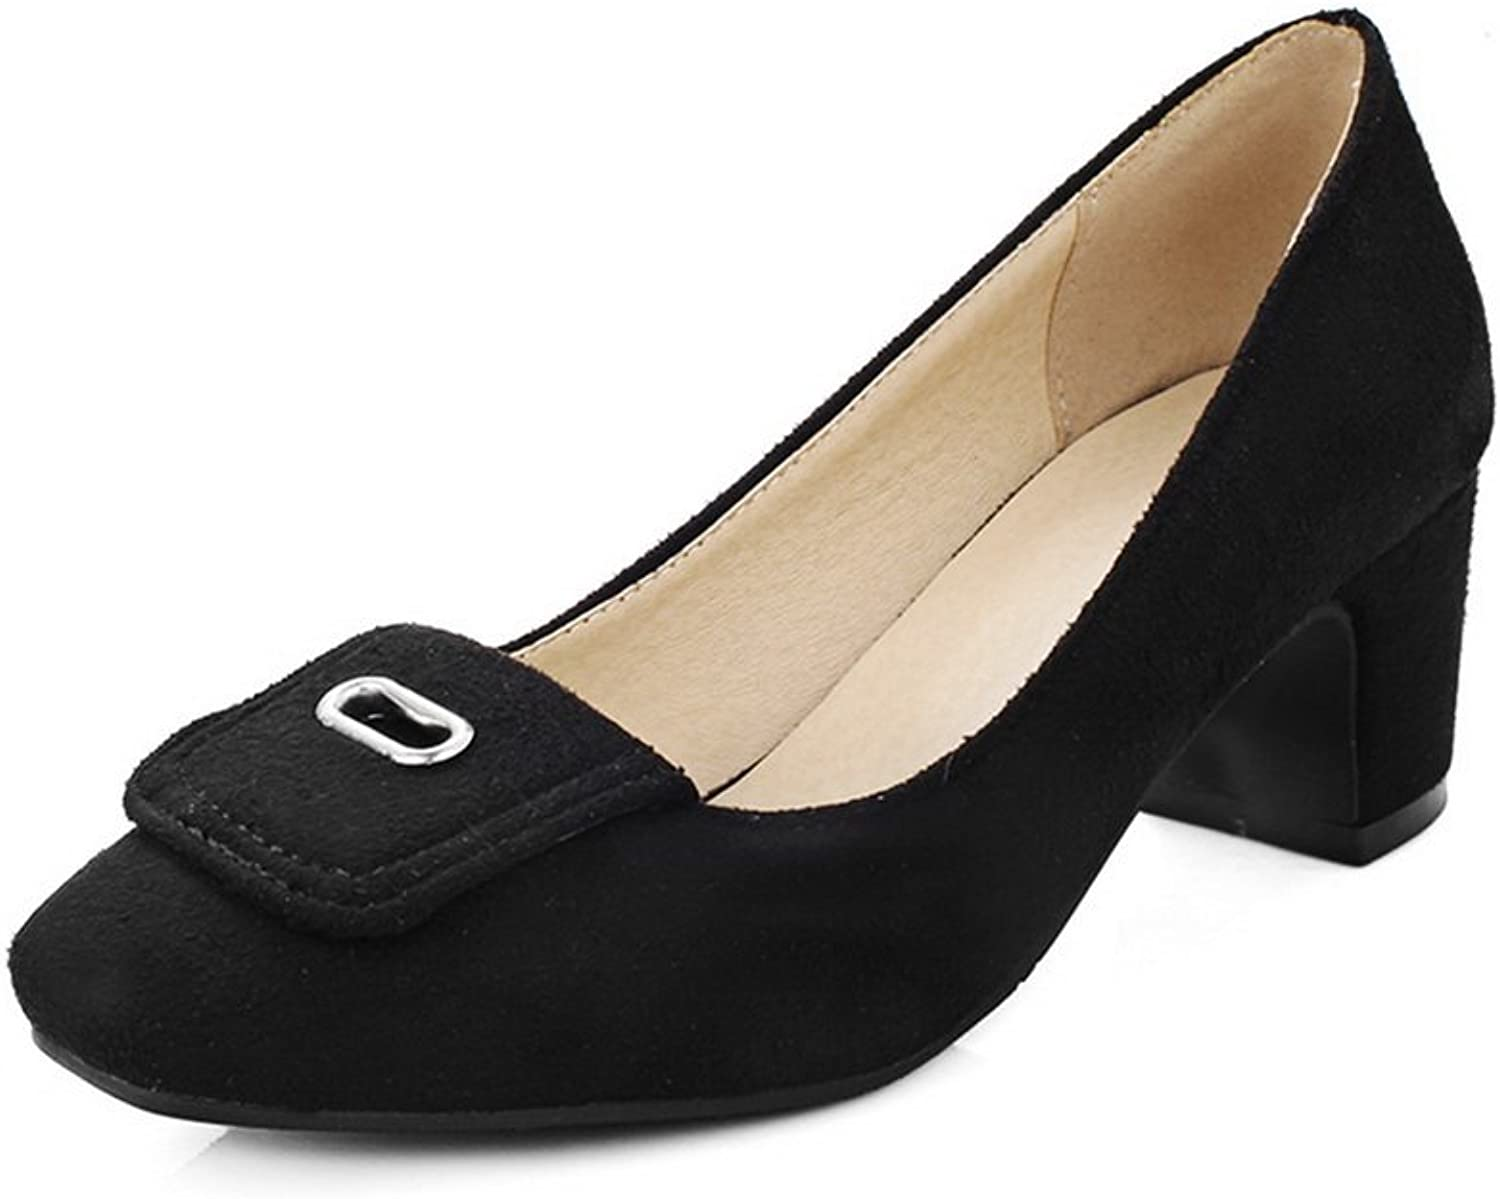 A&N Ladies Square-Toe Chunky Heels No-Closure Low-Cut Uppers Suede Pumps-shoes